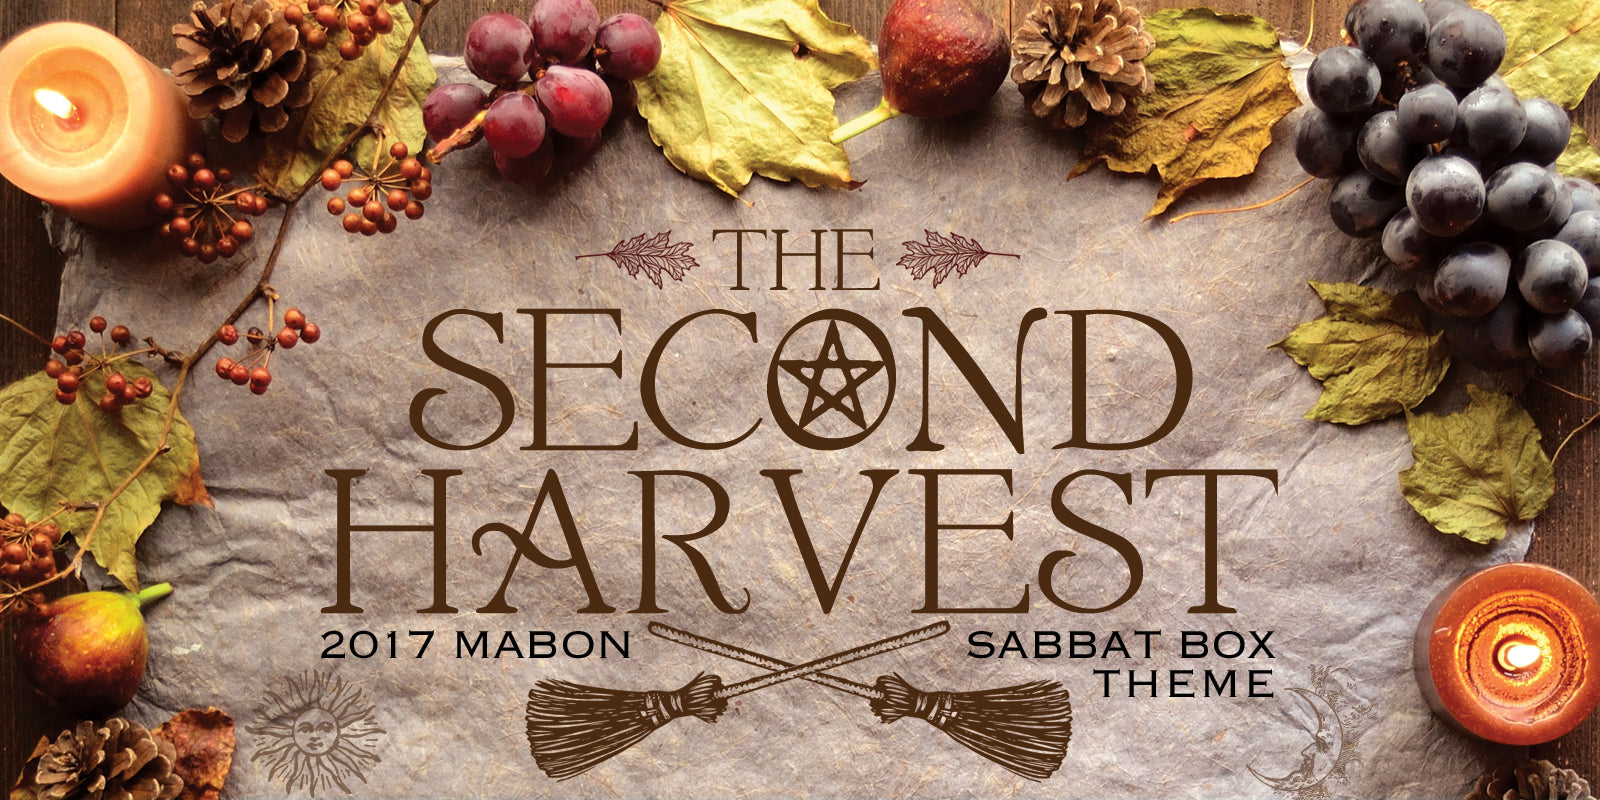 The Second Harvest - Mabon Sabbat Box Theme